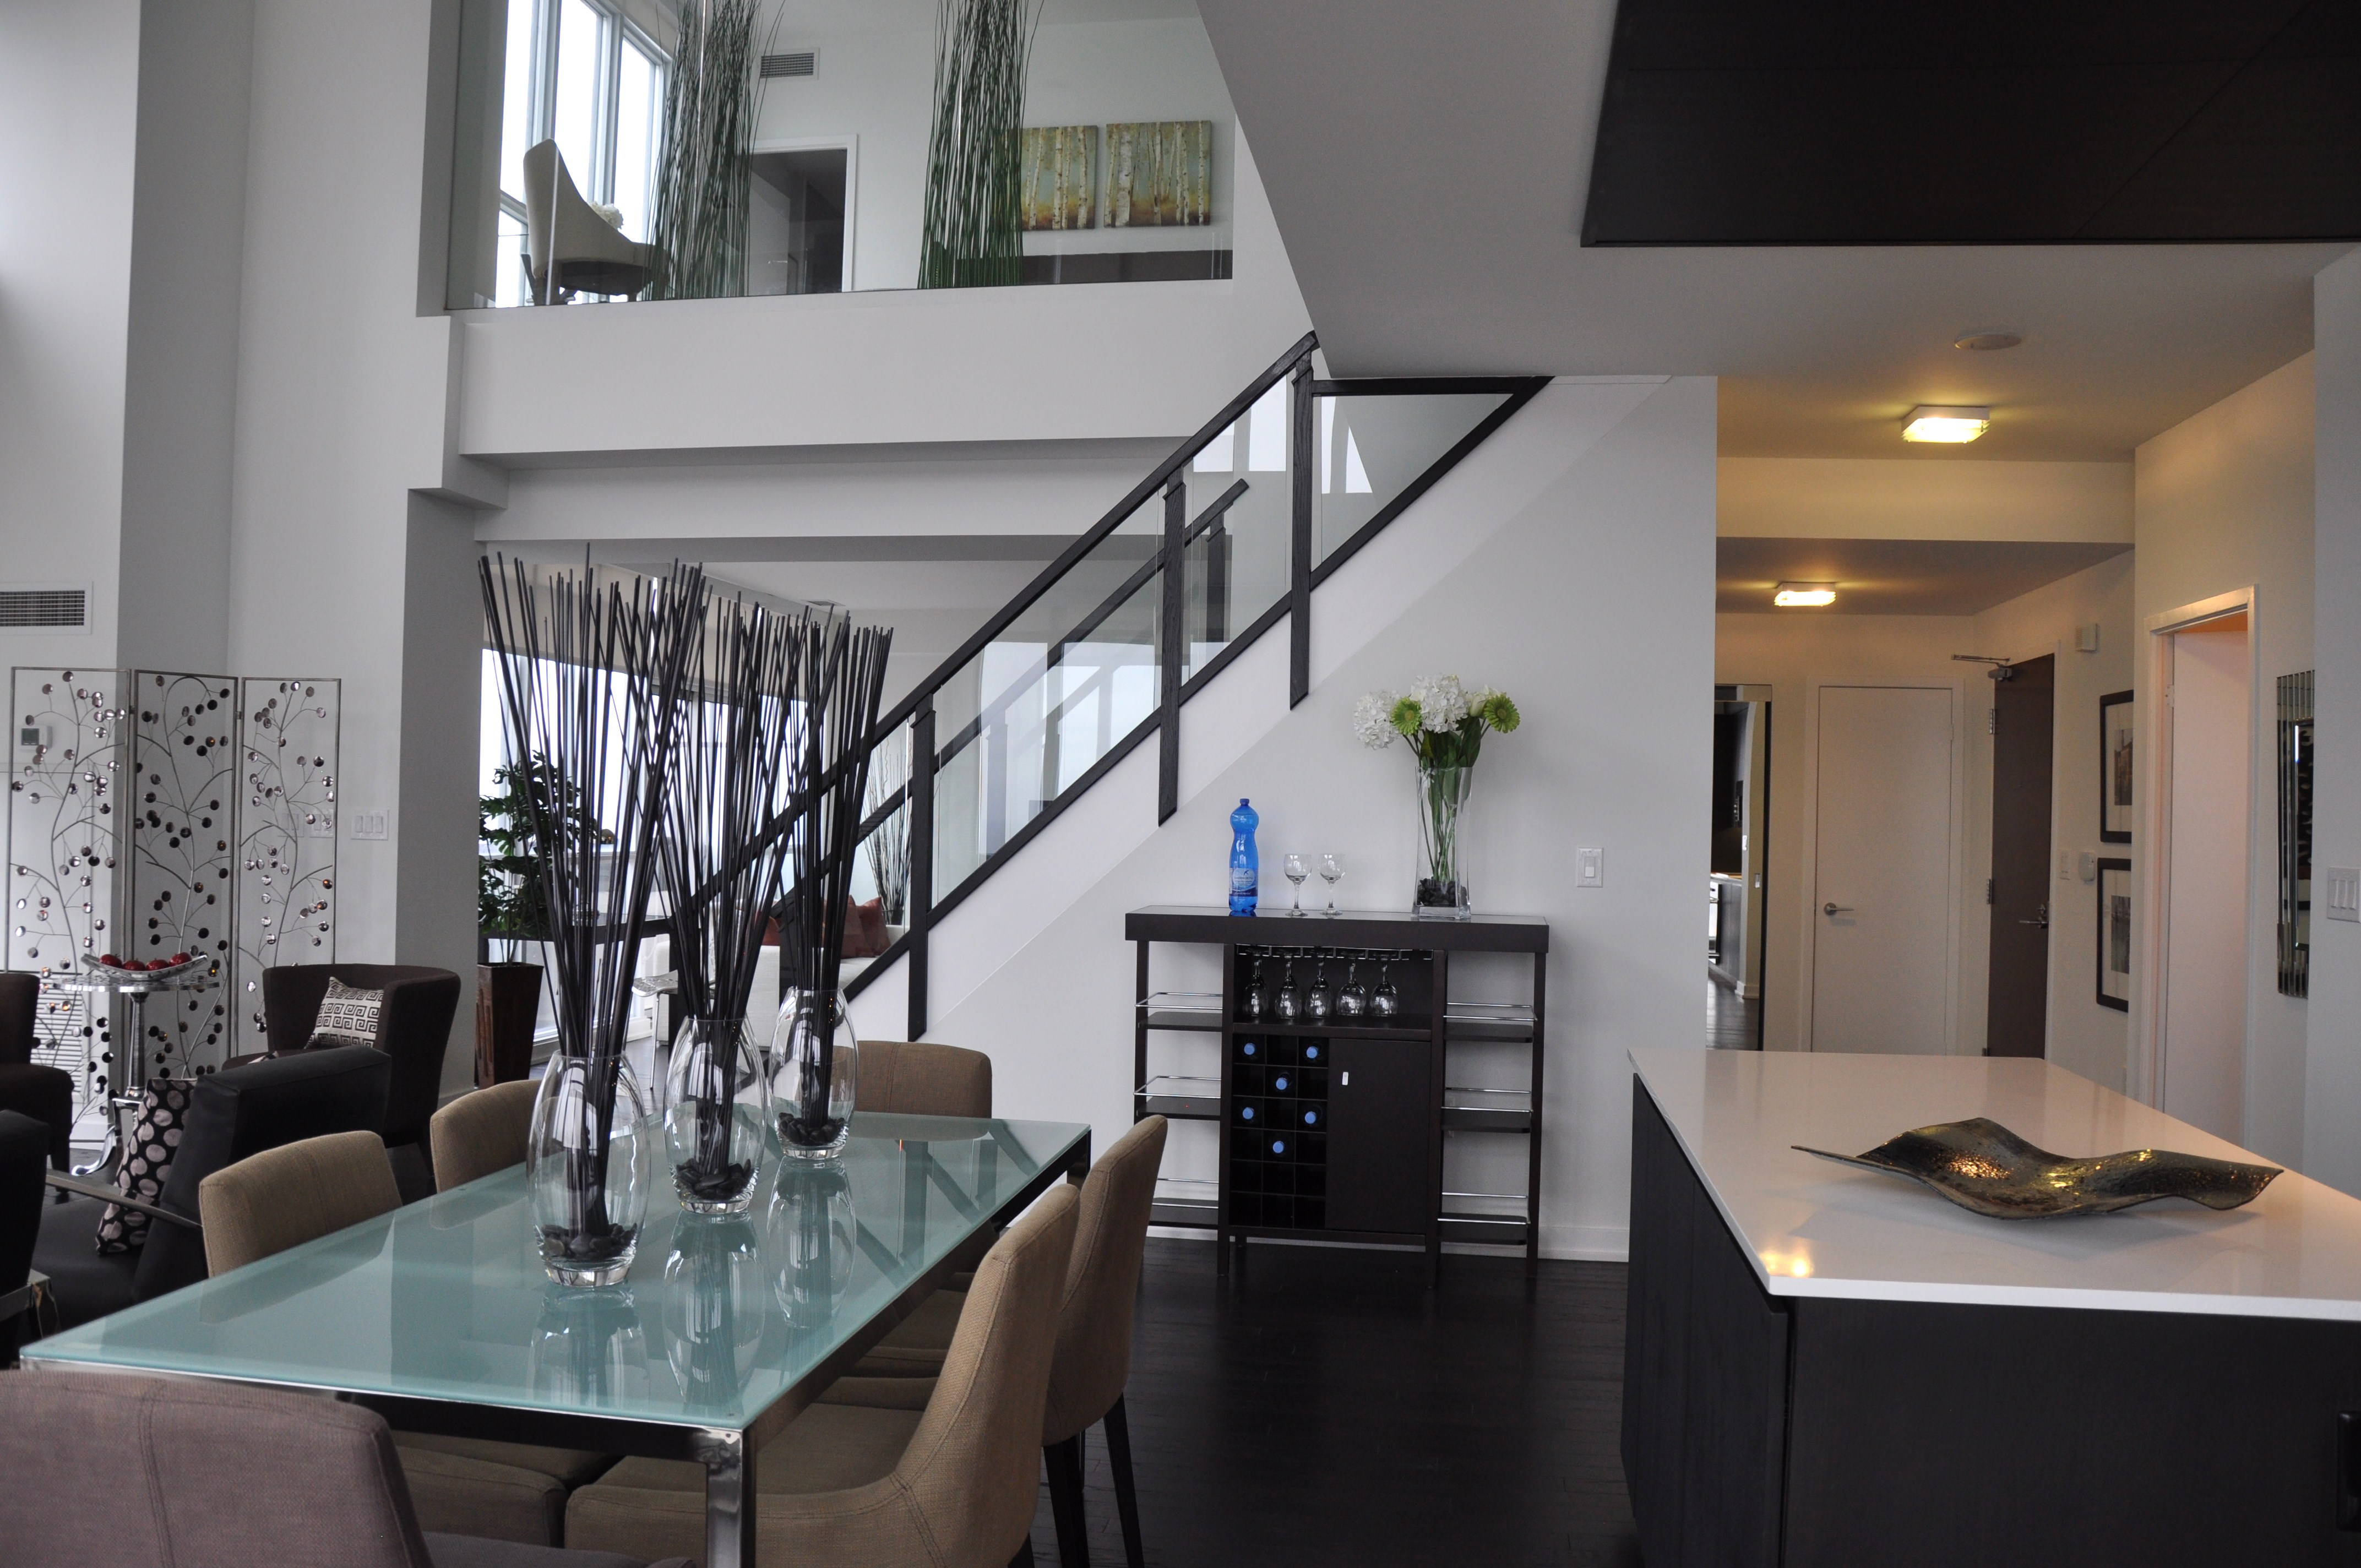 2 Sisters HomeStyling Toronto Markham Richmond Hill 2 Level Penthouse Condo